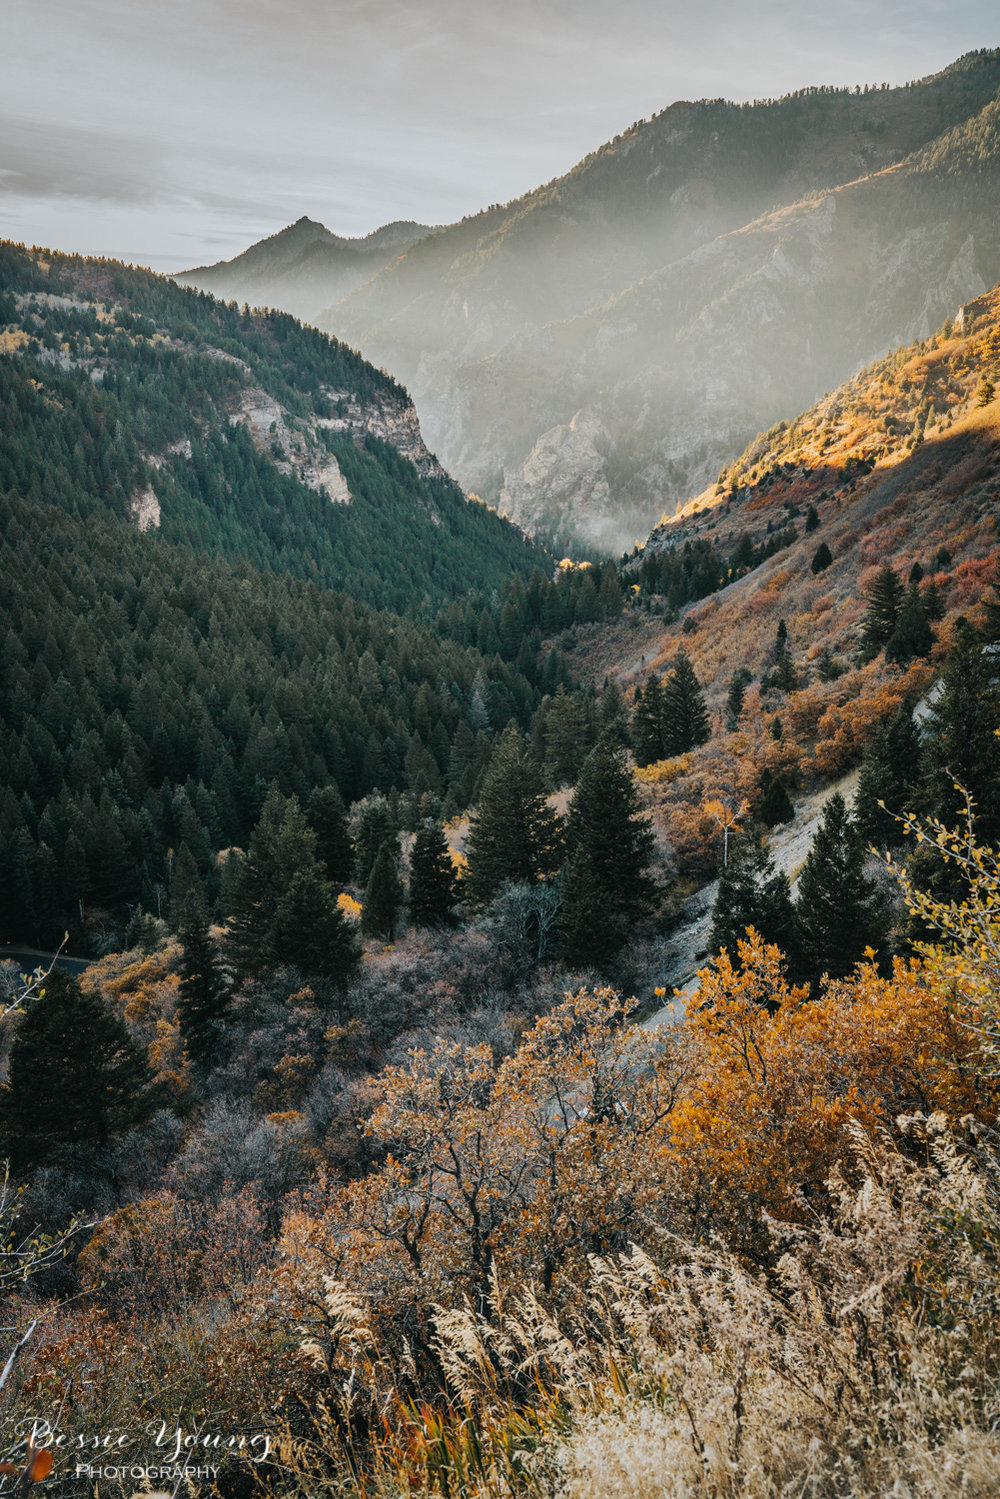 Alpine Loop Utah - Bessie Young Photography 2017-13.jpg